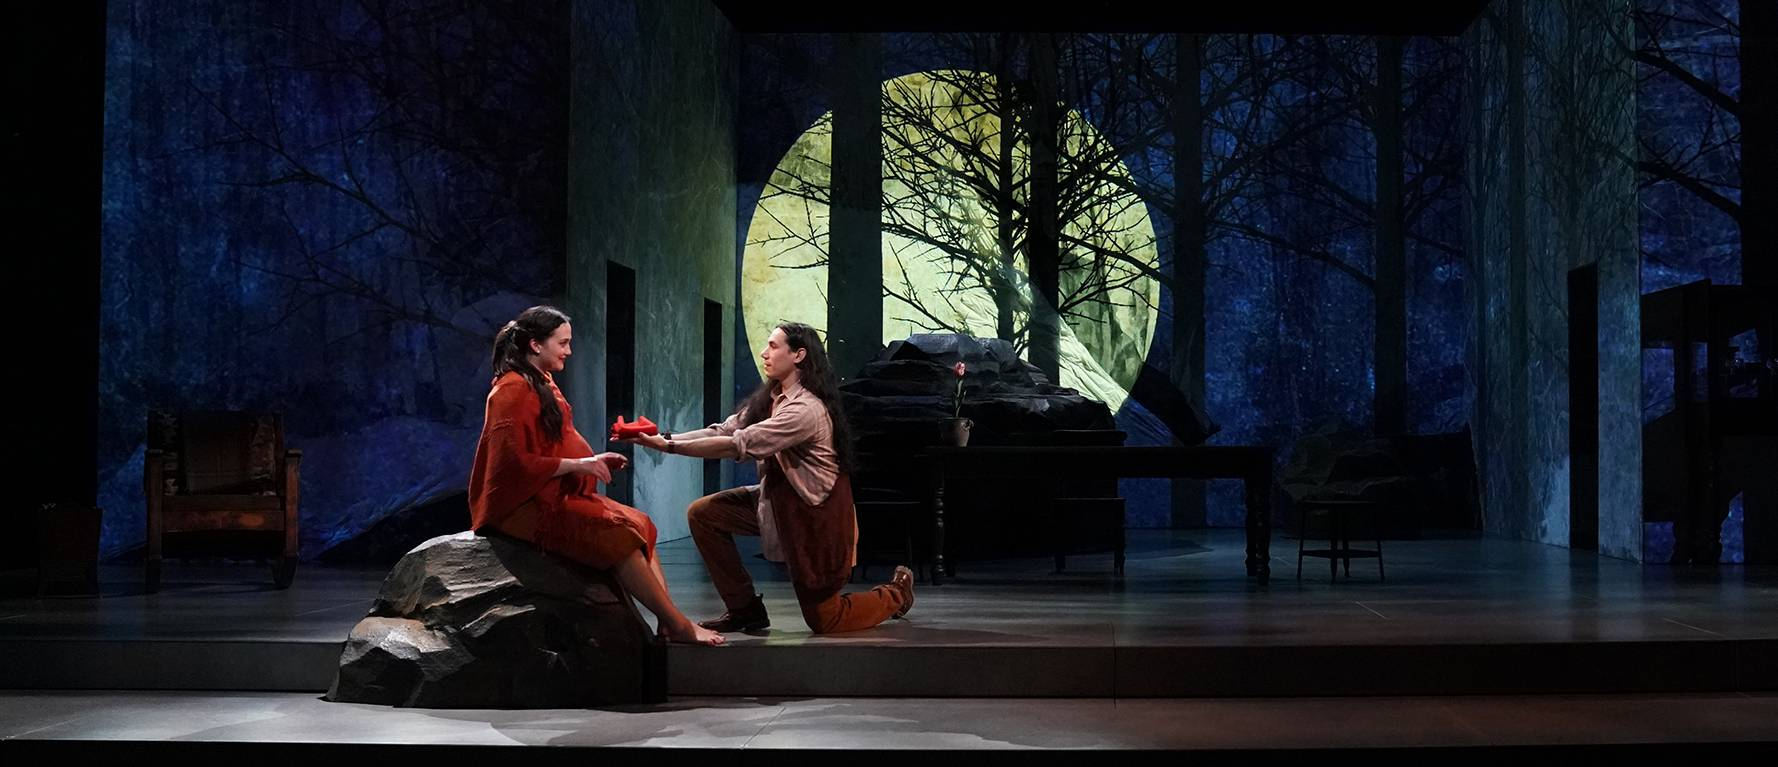 A scene from MANAHATTA by Mary Kathryn Nagle, directed by Laurie Woolery, Yale Repertory Theatre, 2020. Photo by Joan Marcus.